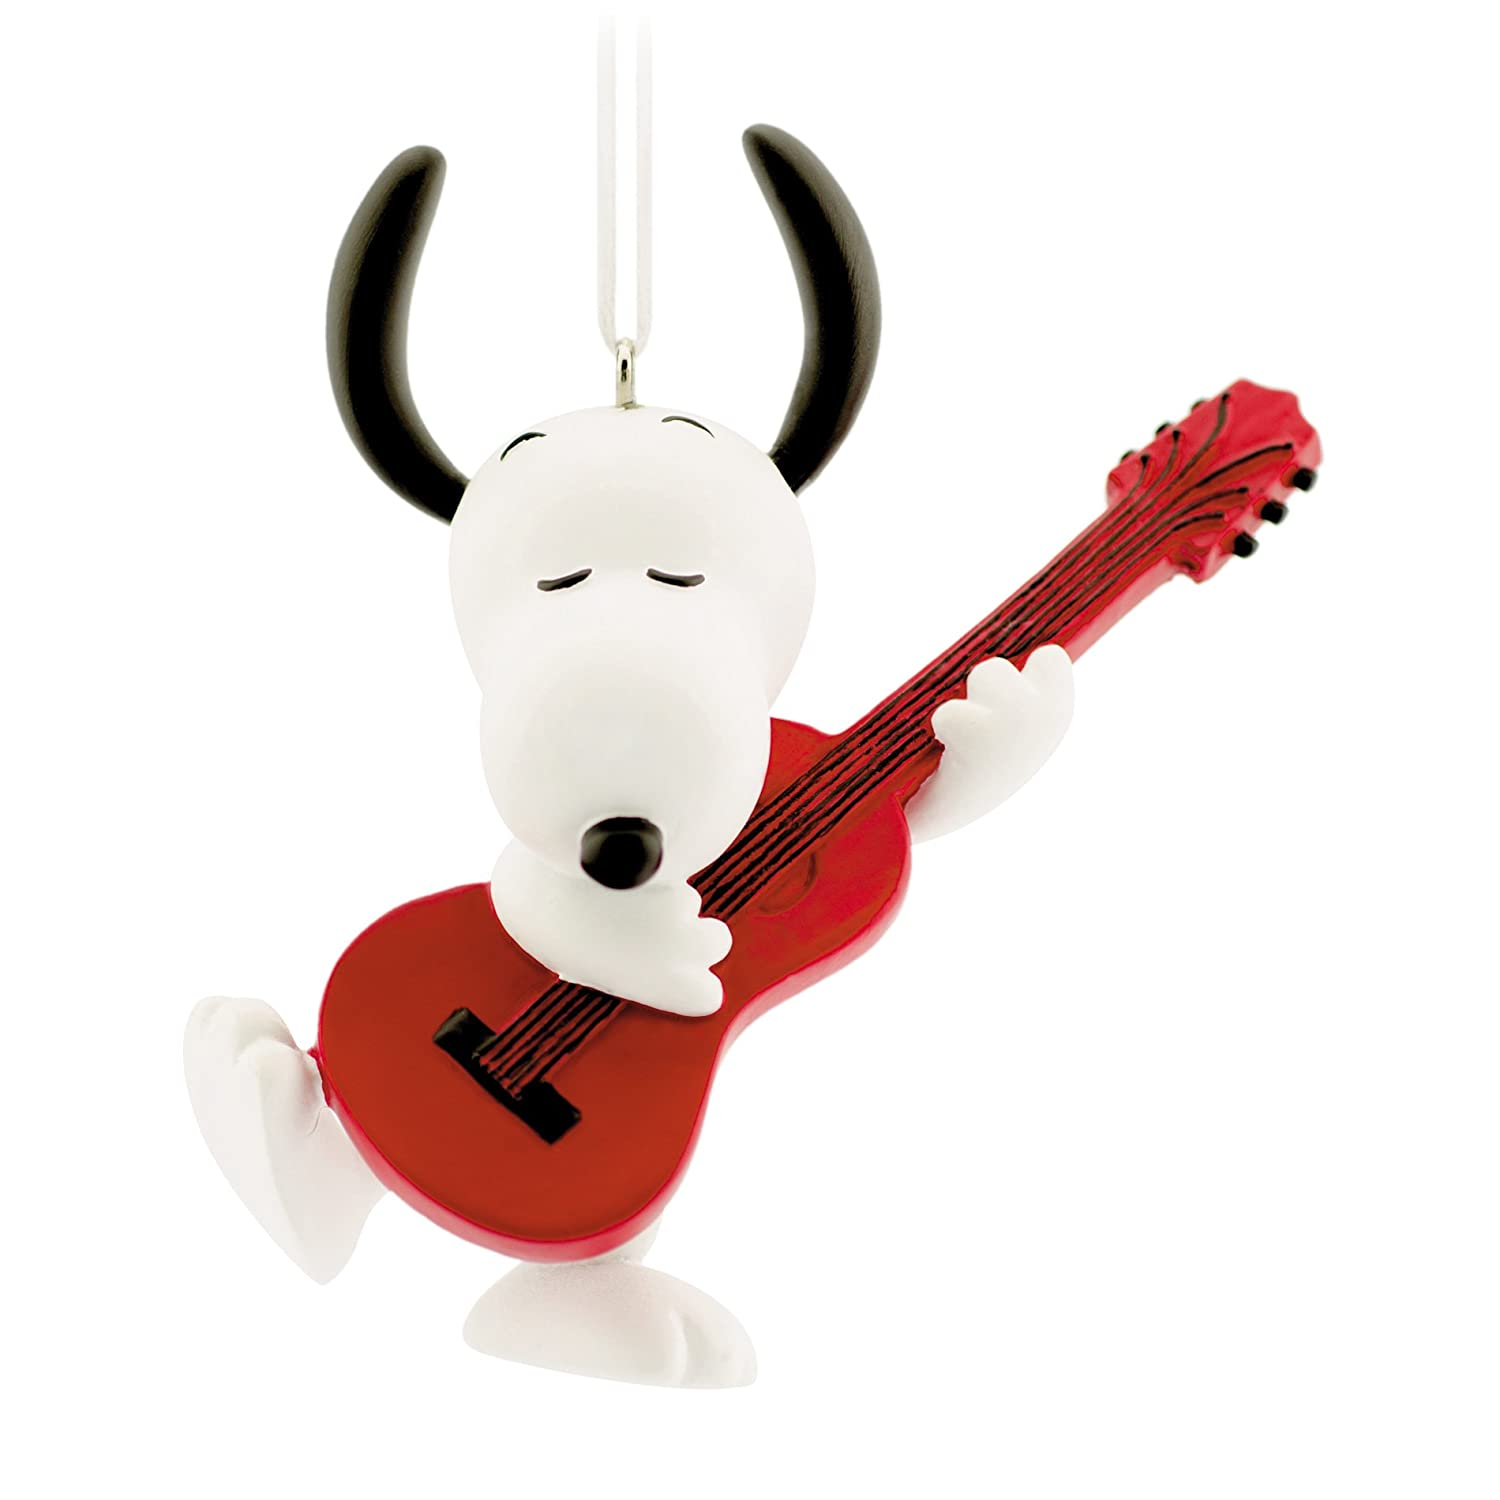 Amazoncom Hallmark Peanuts Snoopy with Guitar Christmas Ornament